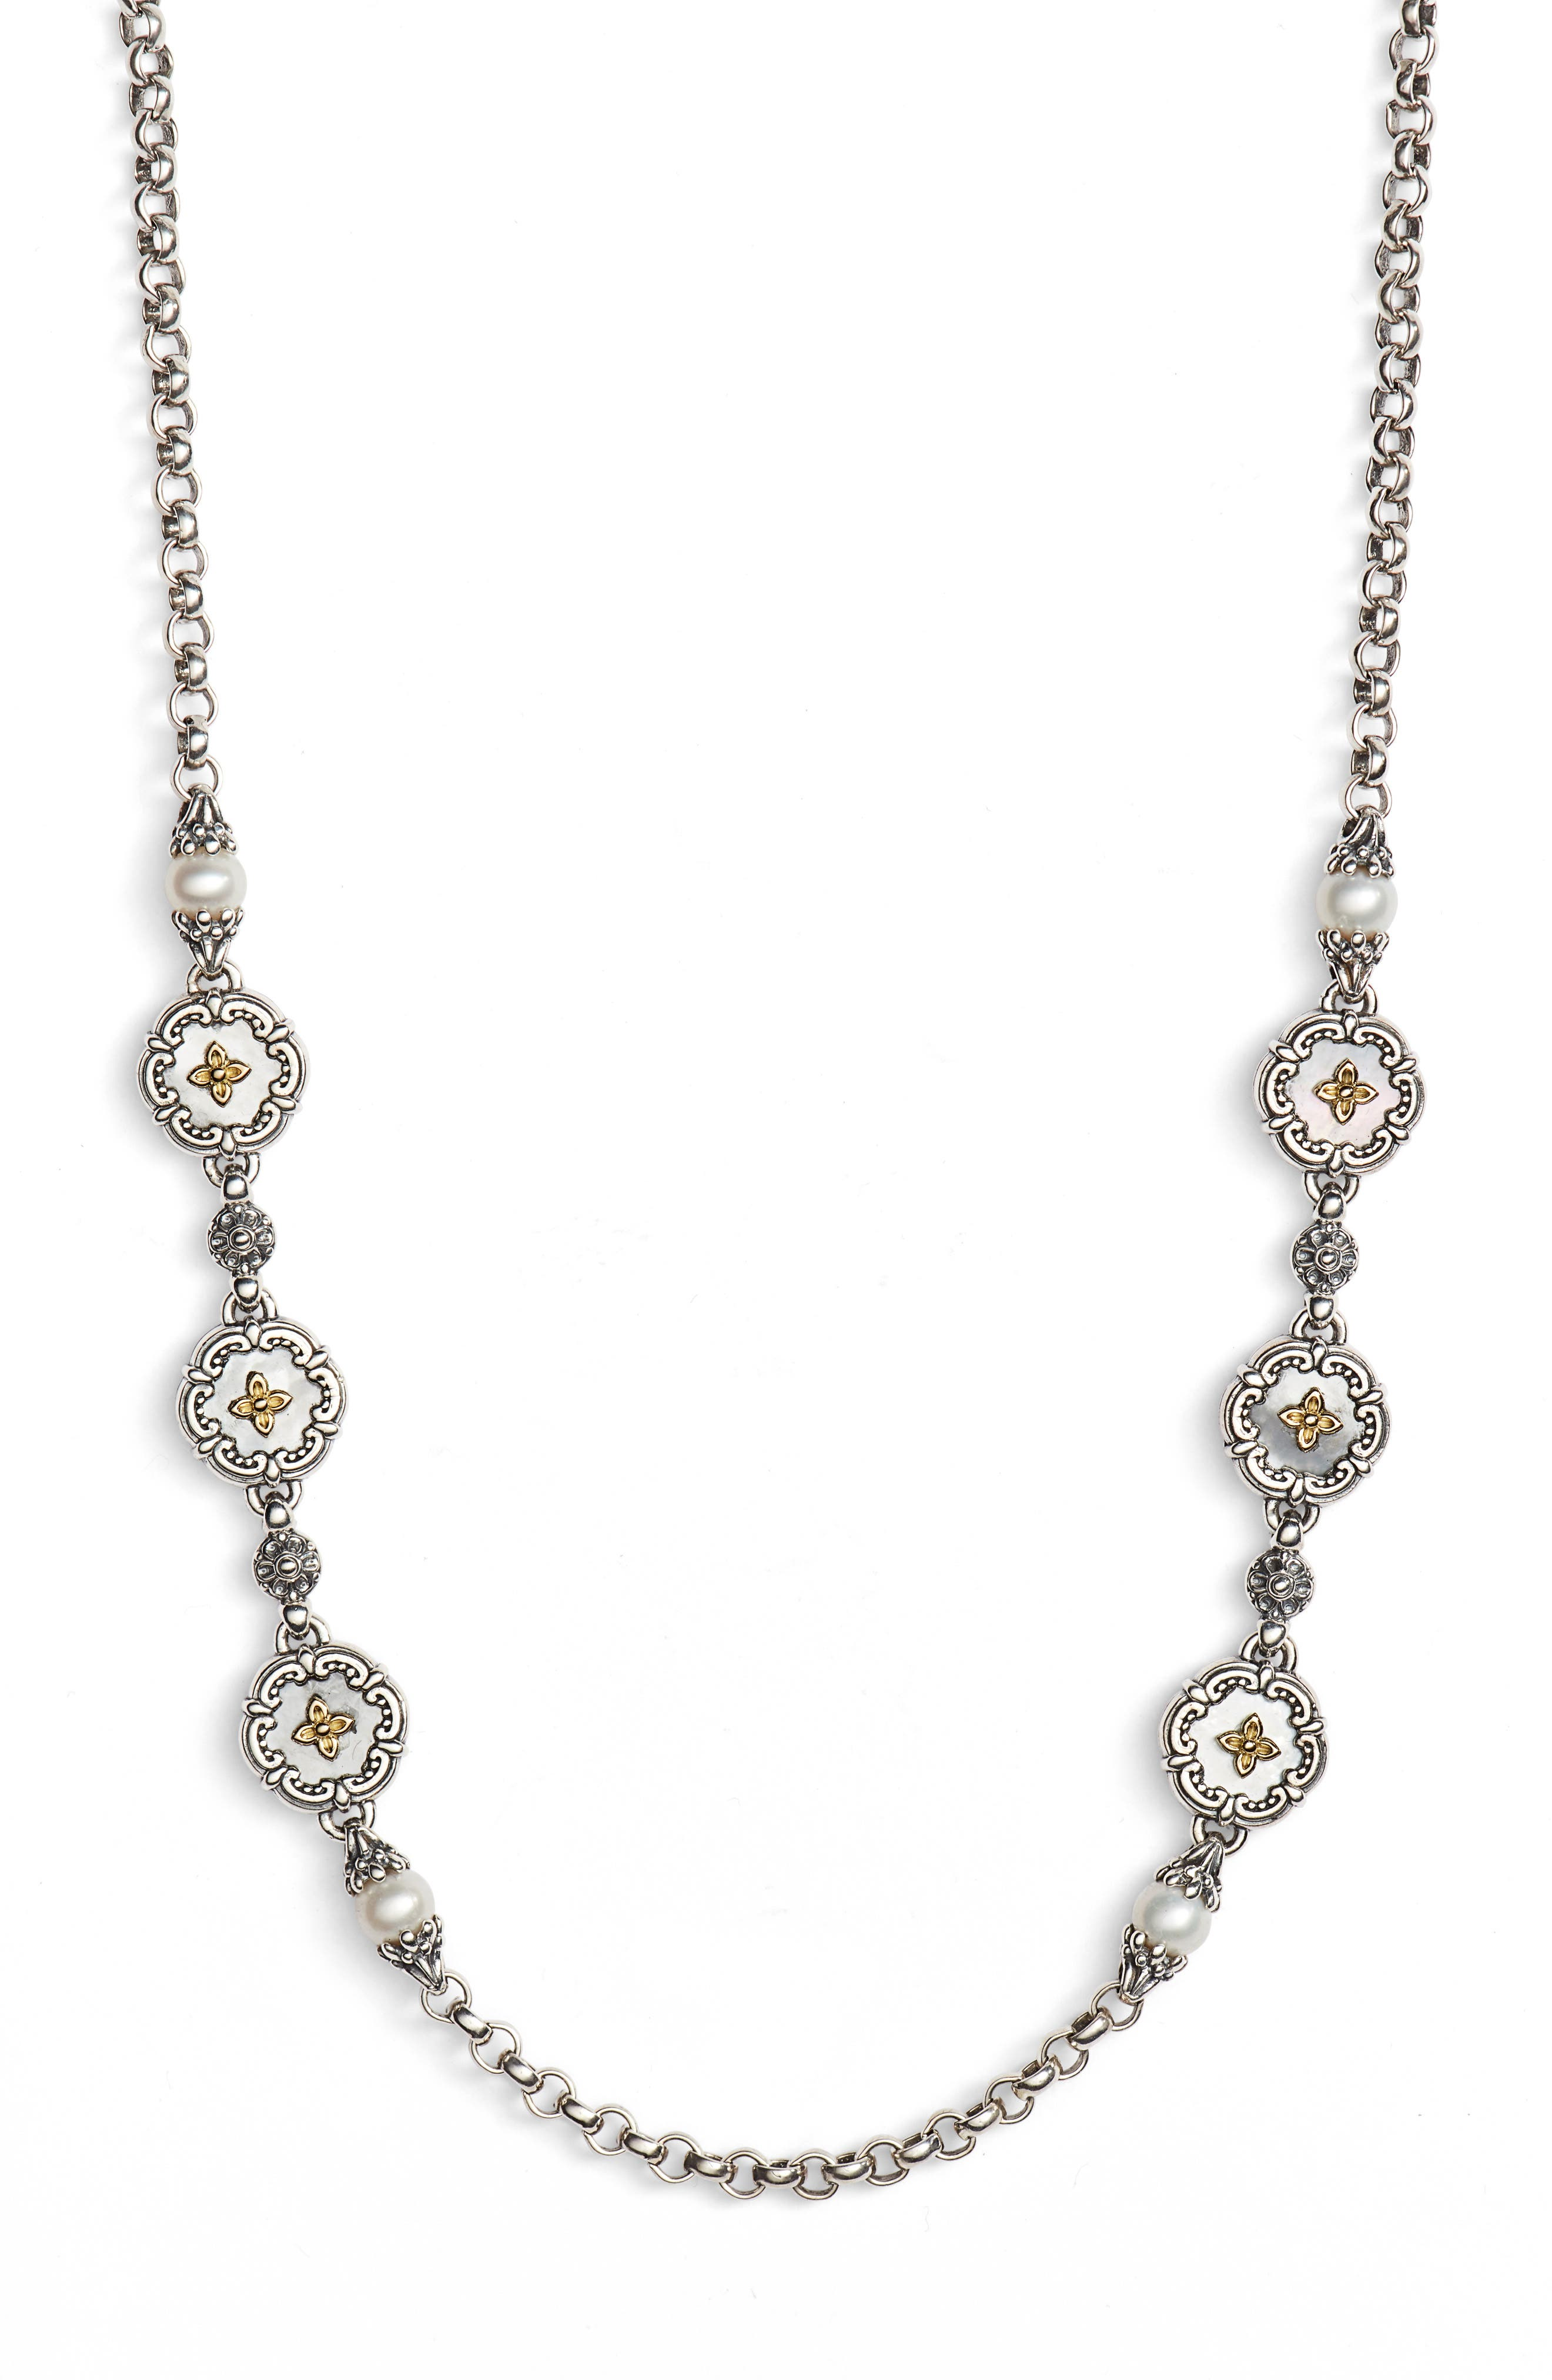 Etched Sterling & Pearl Necklace,                             Main thumbnail 1, color,                             040